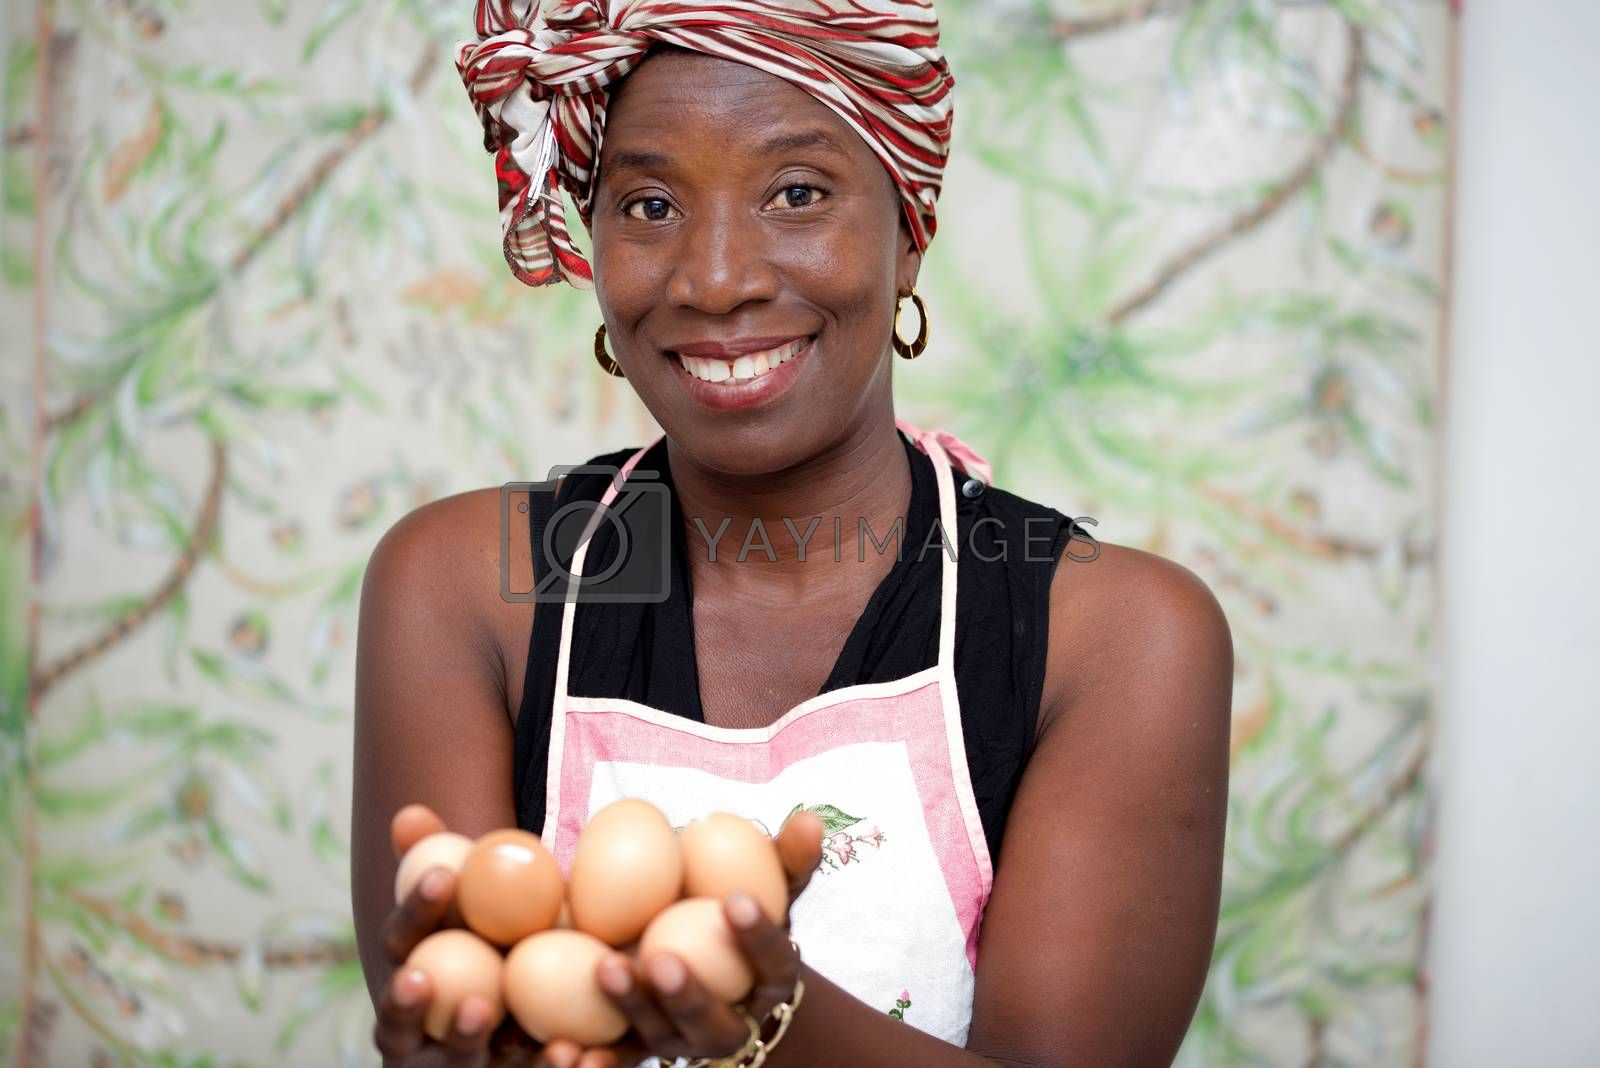 young smiling woman holding eggs in the hand by vystek